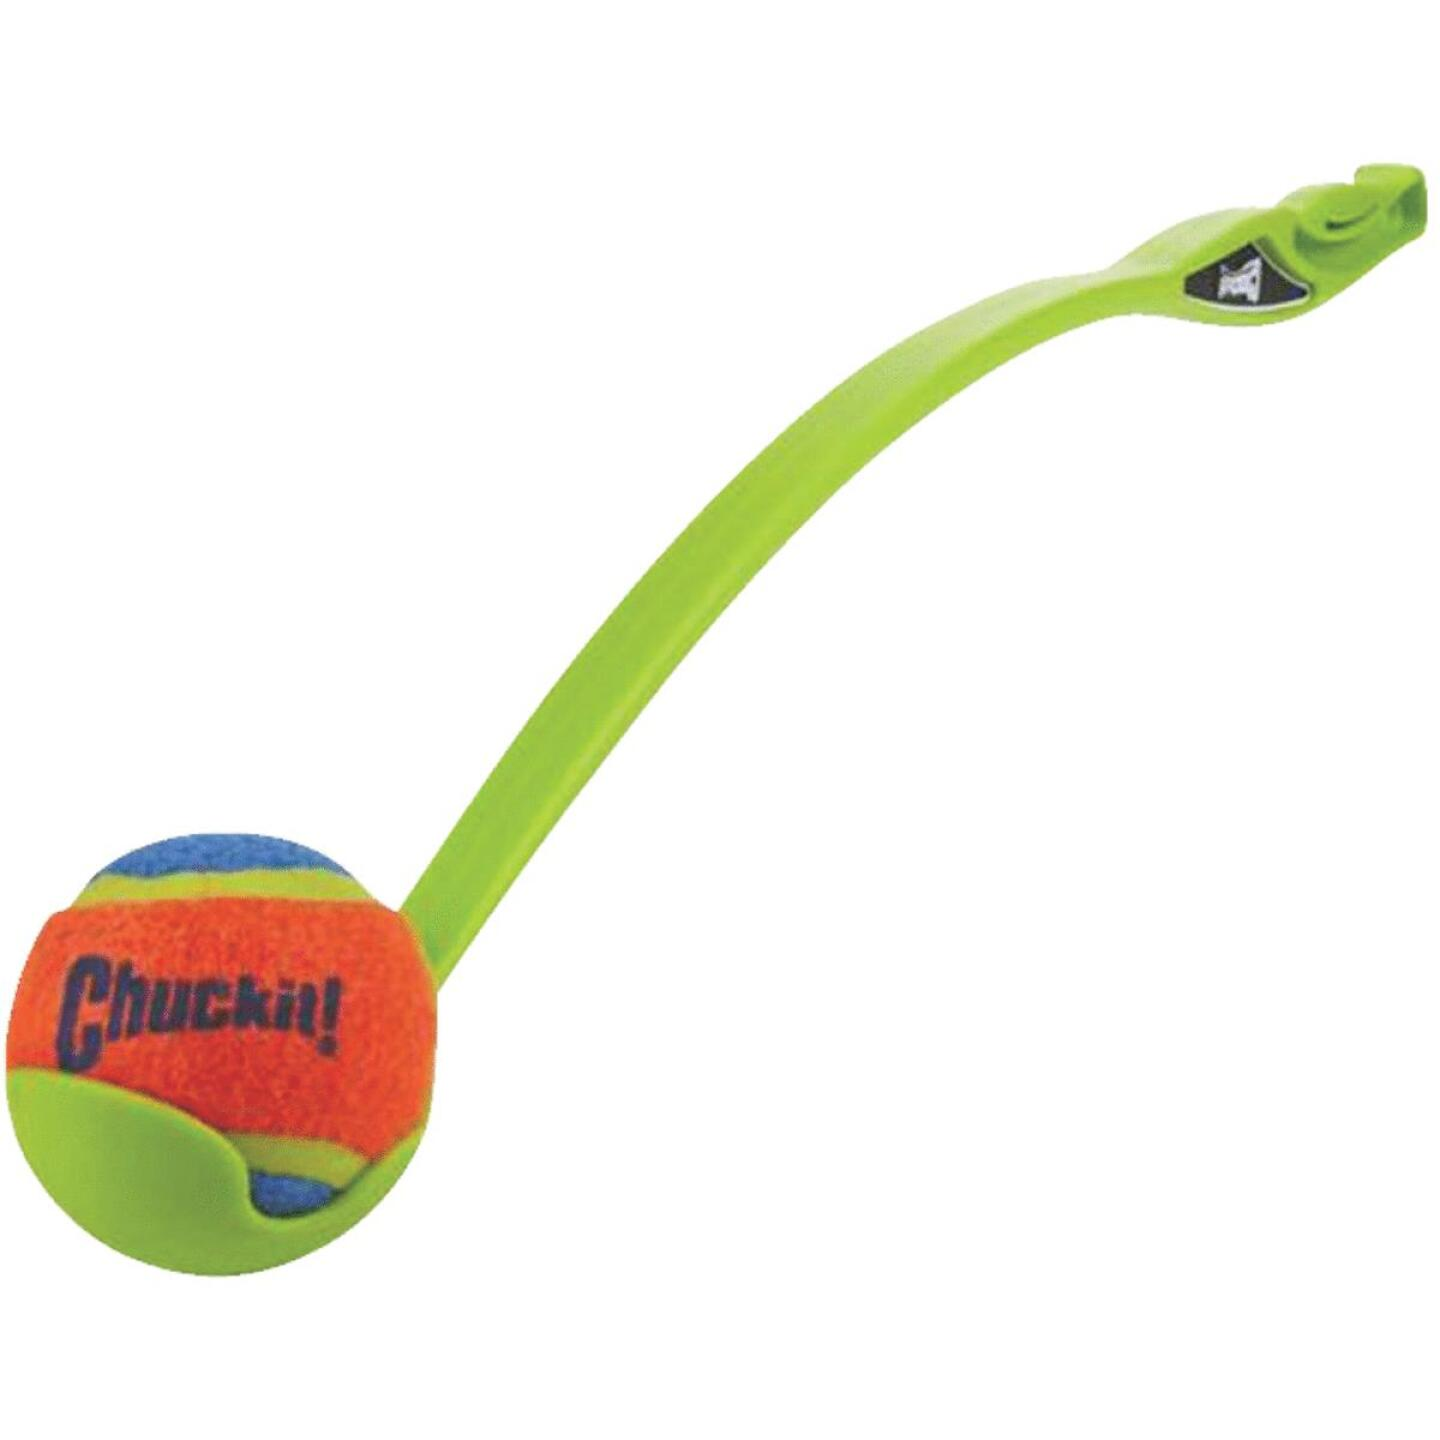 Petmate Chuckit Medium Ball Launcher Dog Toy Image 1